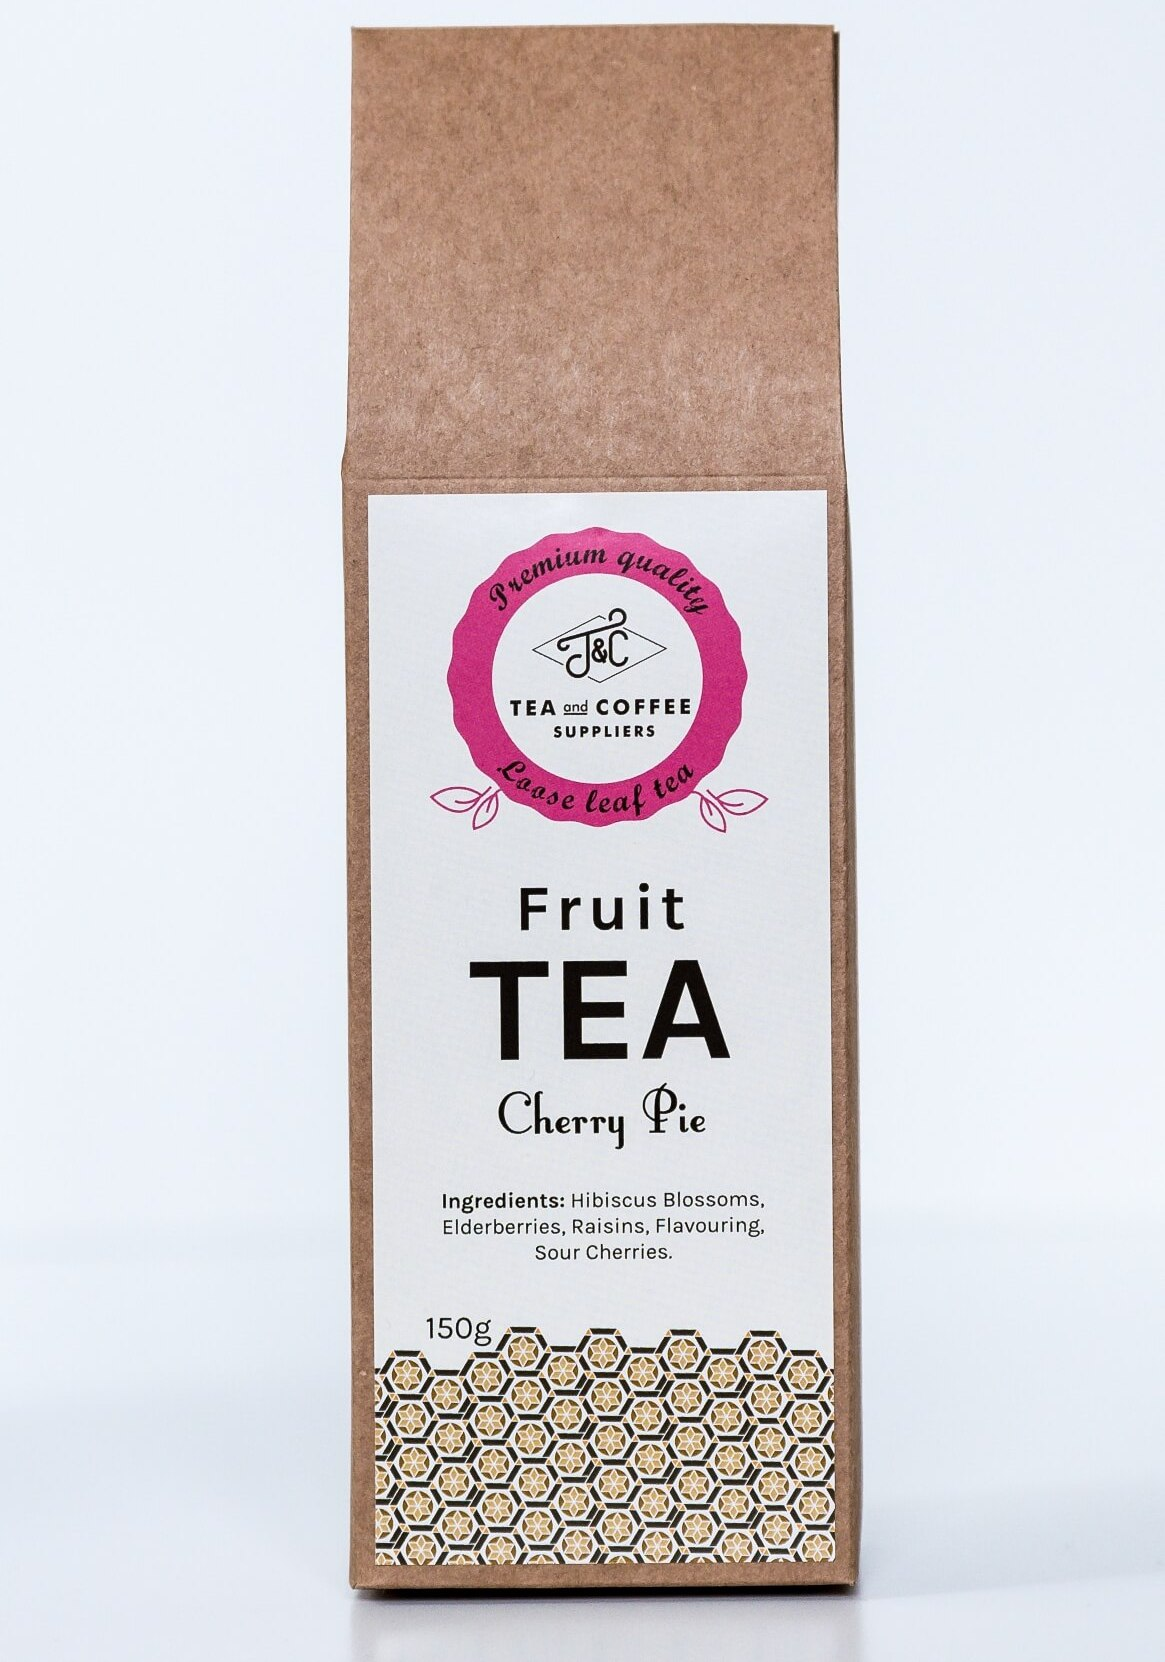 T&C Cherry Pie Fruit Tea